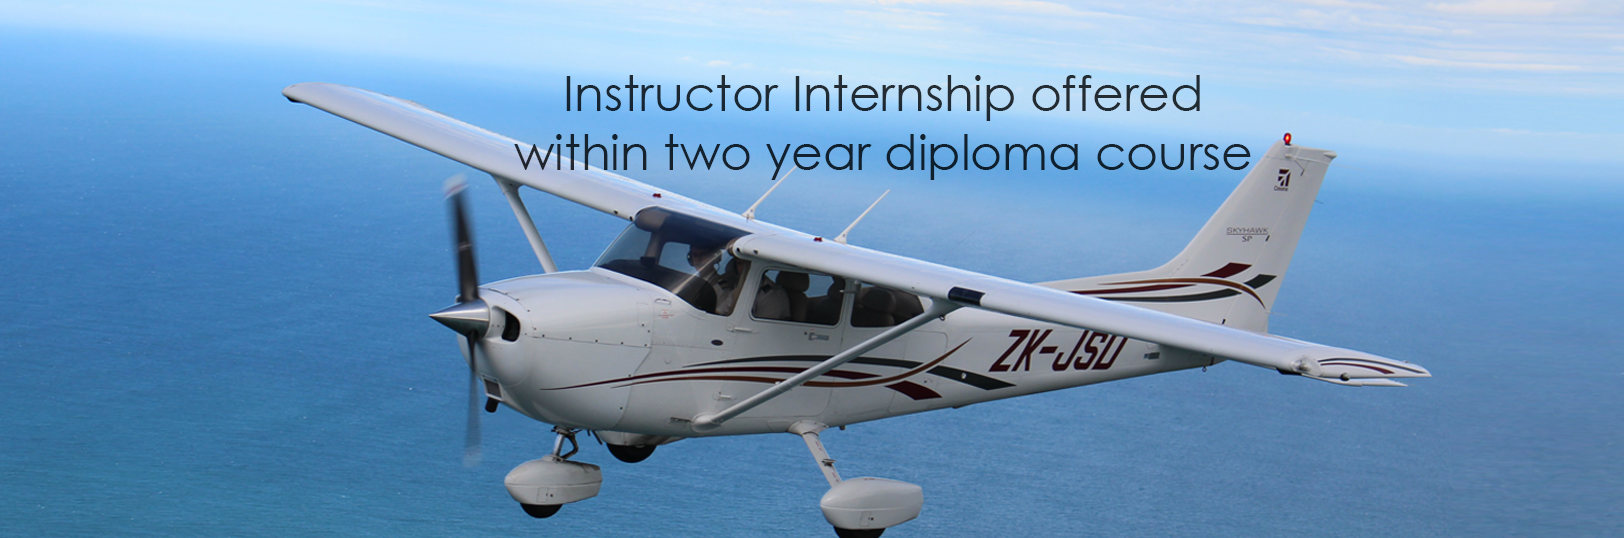 Instructor Internship Offer